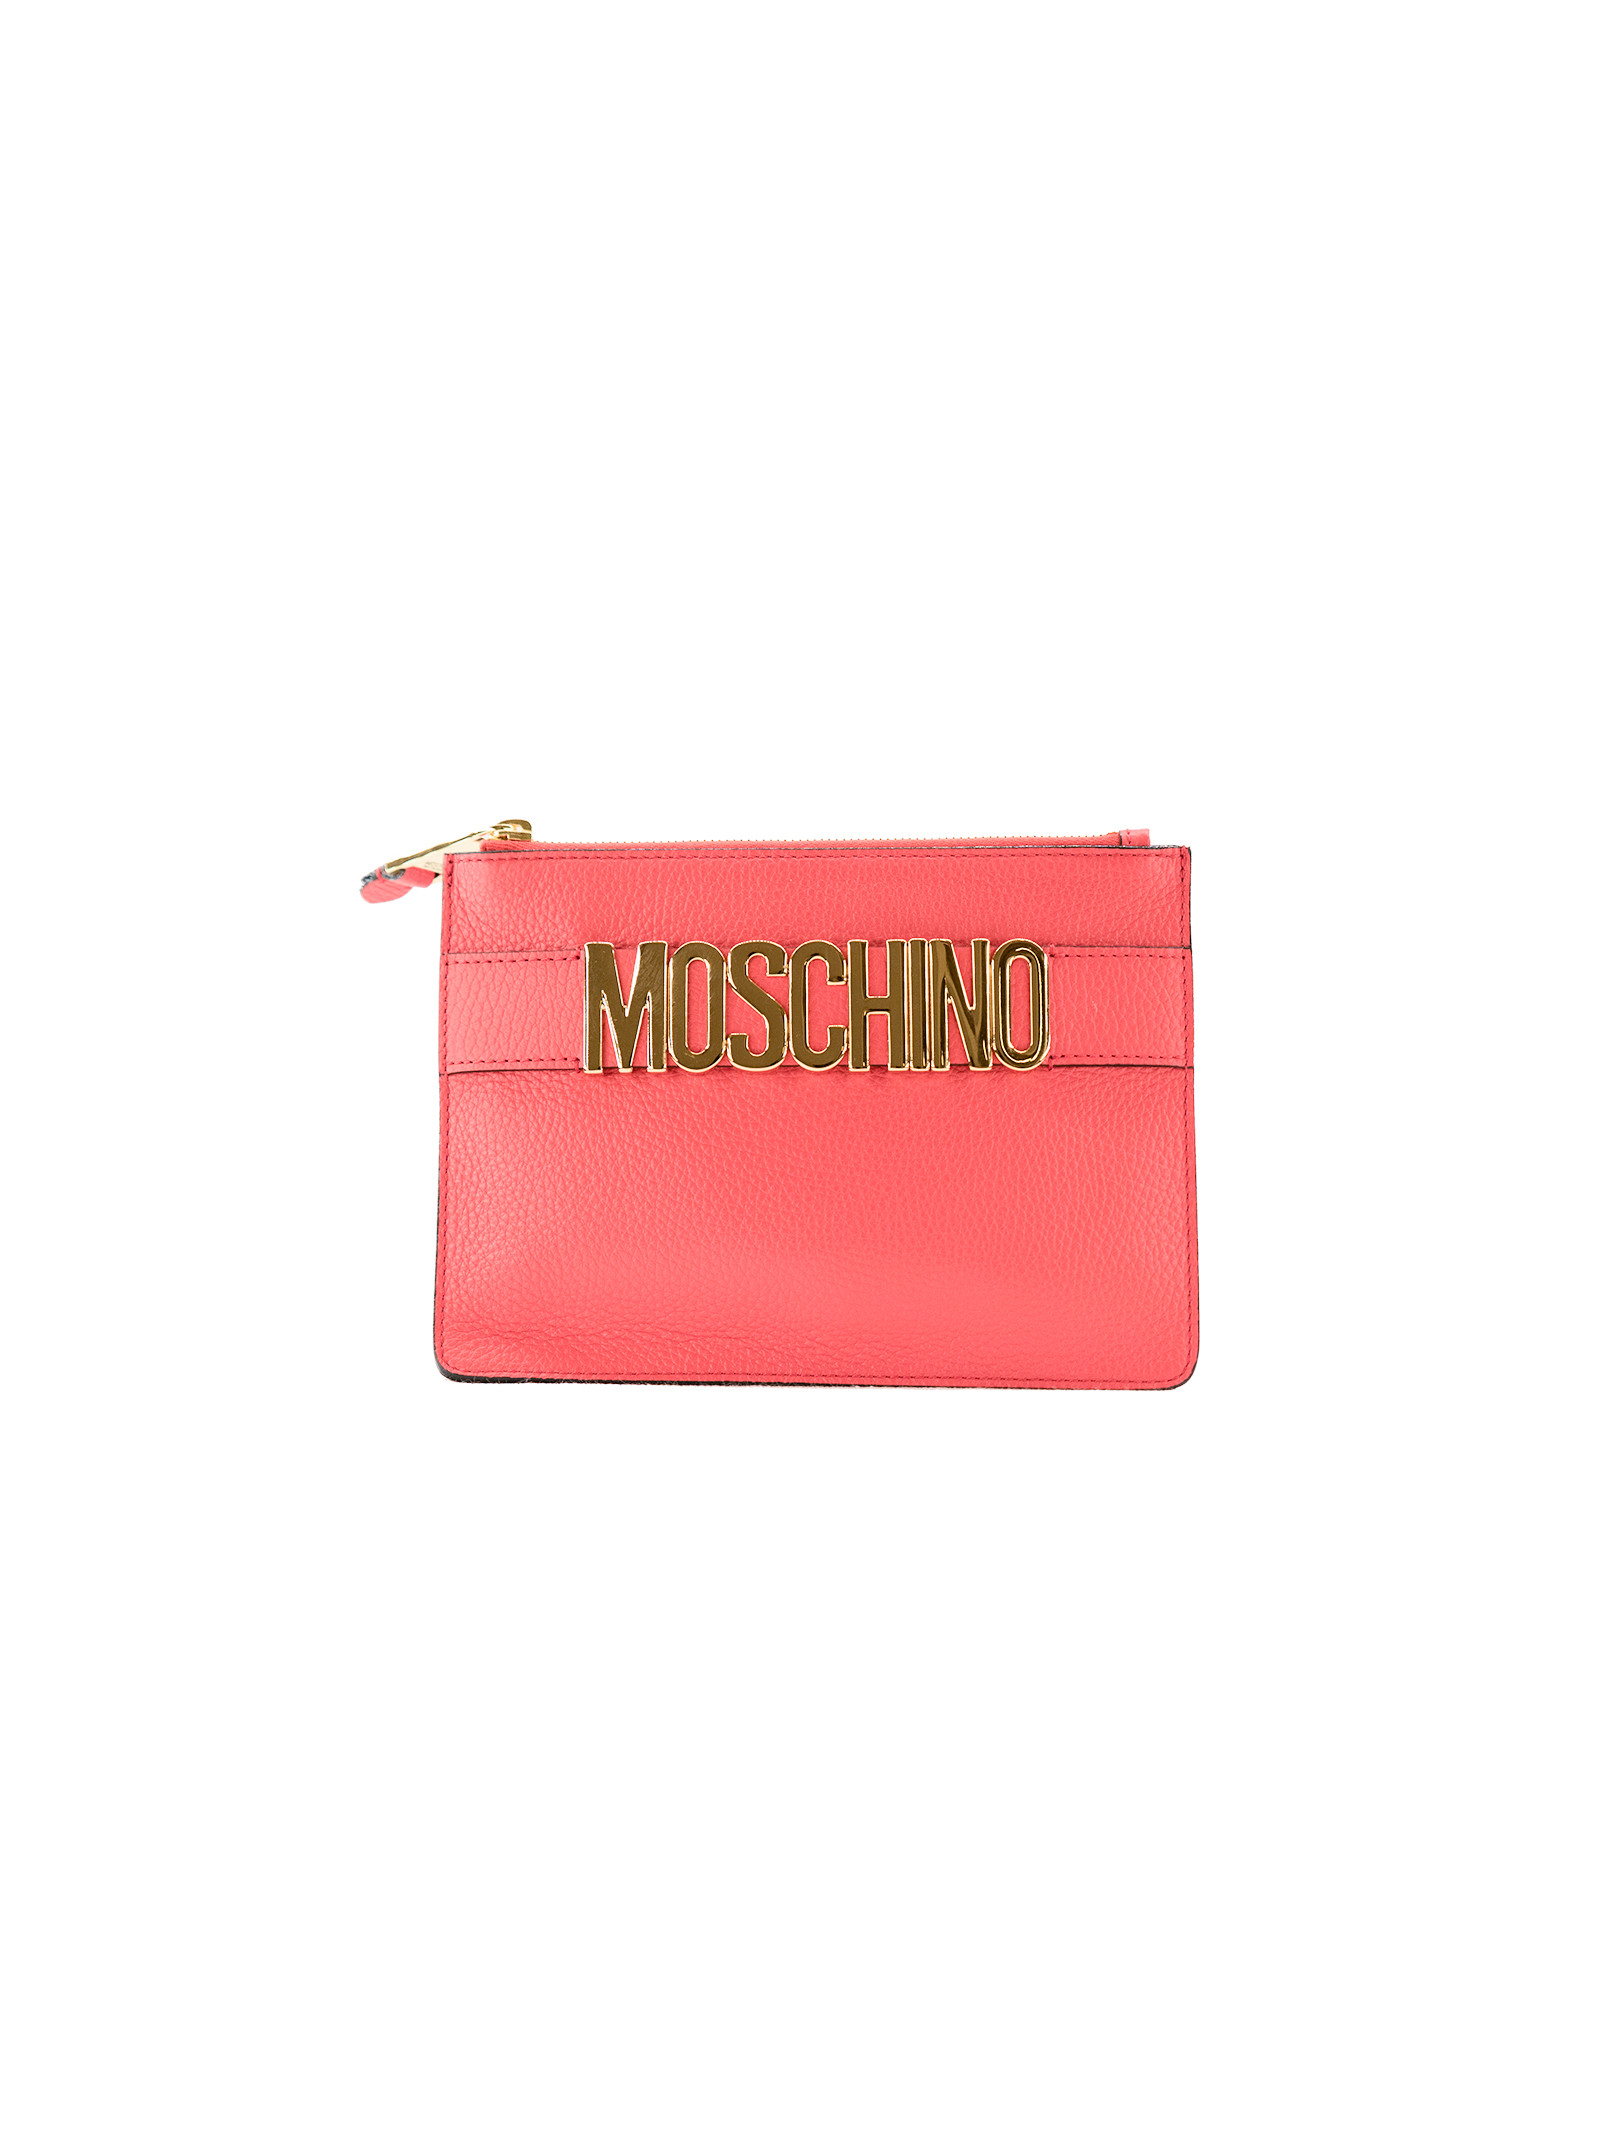 Logo Plaque Clutch from Moschino: Pink Logo Plaque Clutch with gold-tone top zip fastening, gold-tone hardware, hand strap with gold-tone plaque and internal logo patch.